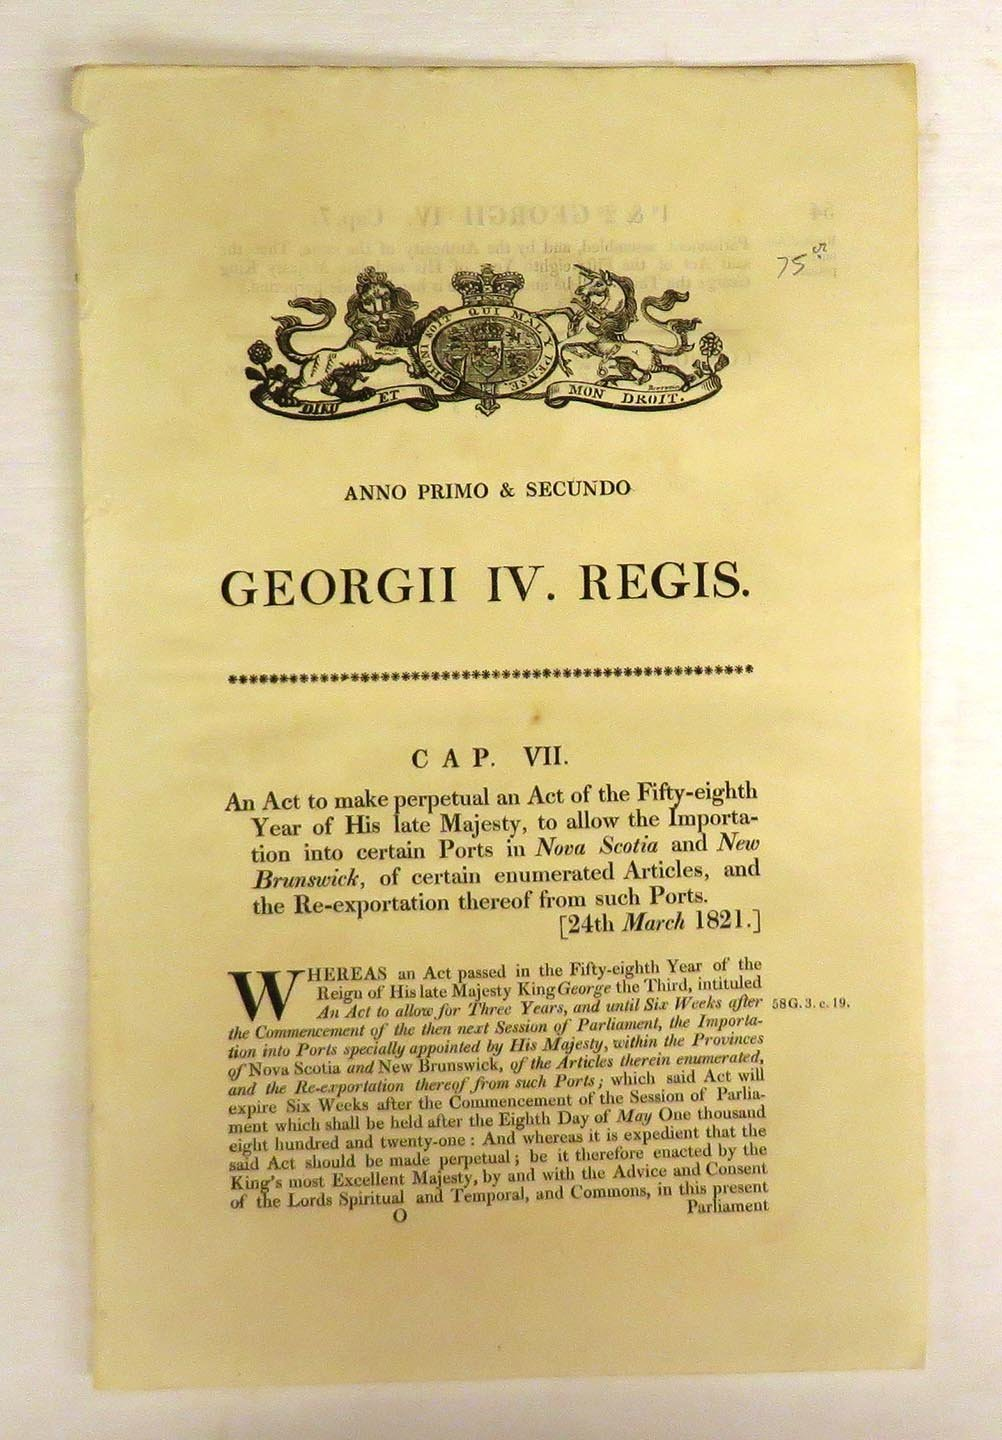 An Act to make perpetual an Act of the Fifty-eighth Year of His late Majesty, to allow the Importation into certain Ports in Nova Scotia and New Brunswick, of certain enumerated Articles, and the Re-exportation thereof from such Ports